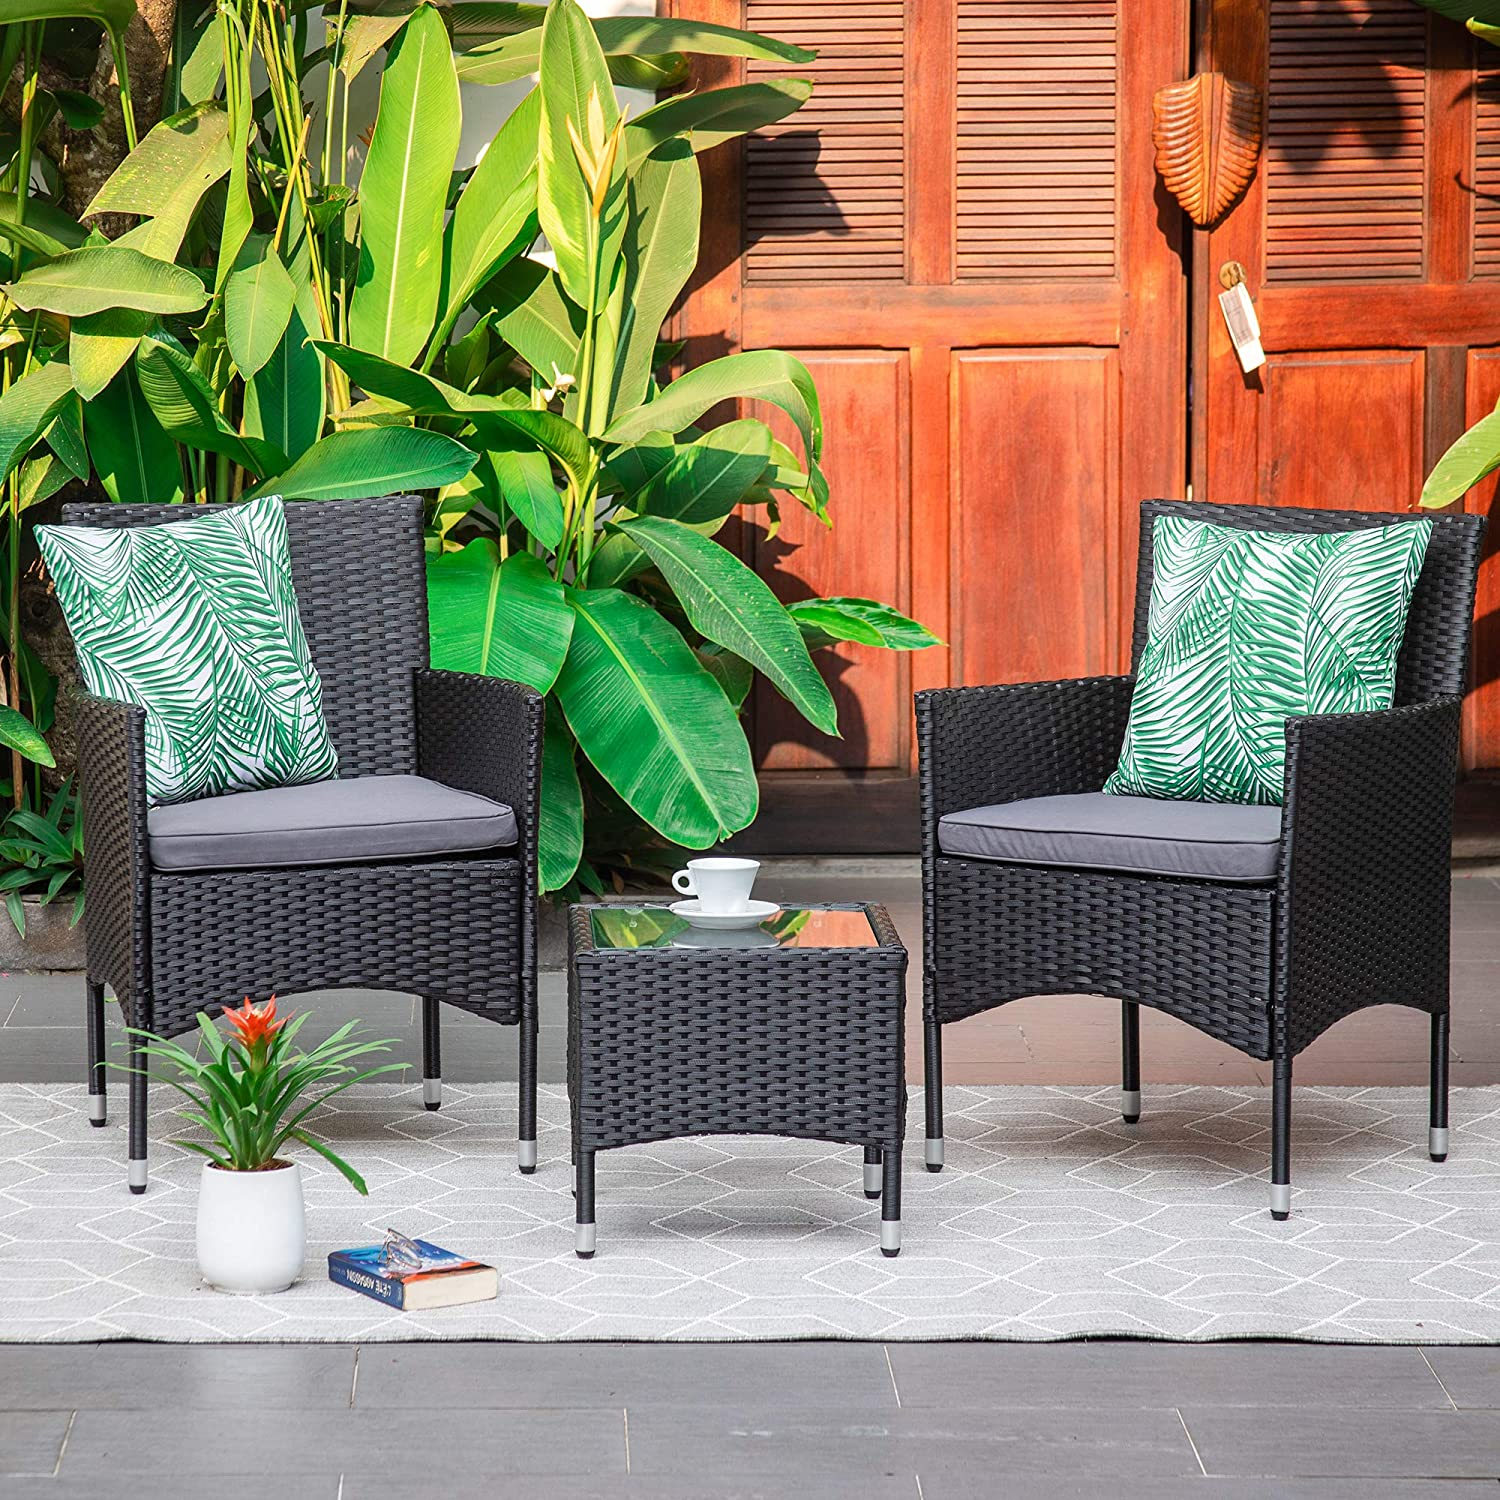 M&W 3 Pieces Patio Furniture Set, Outdoor Chairs and Coffee Table, PE Rattan Wicker Bistro Table Set for Balcony, Lawn, Garden, Backyard, Grey (Throw Pillow NOT Included)